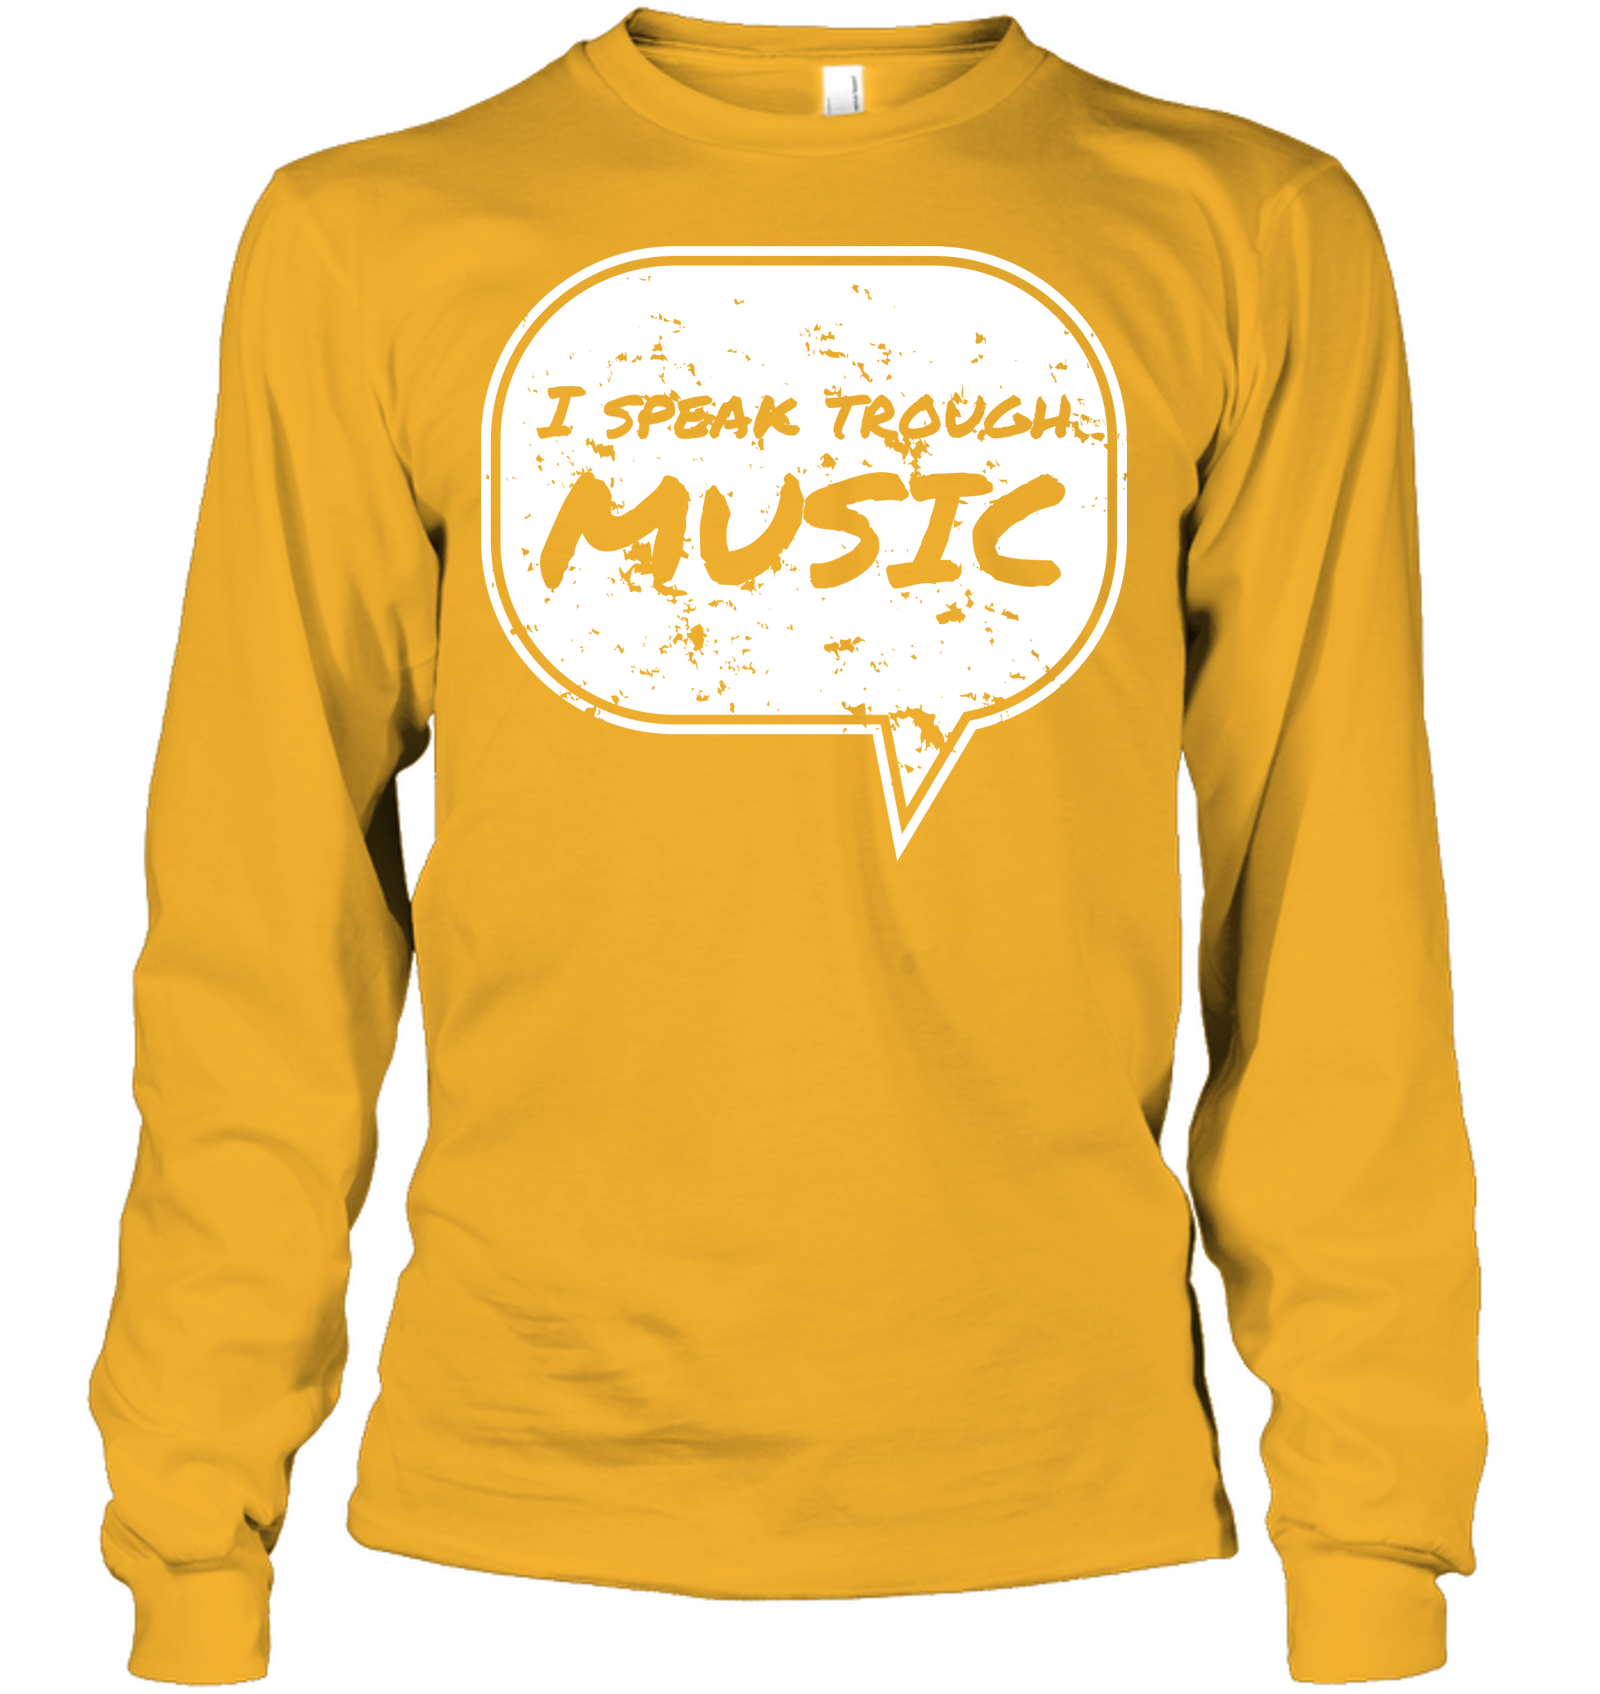 I Speak Through Music - Gildan Adult Classic Long Sleeve T-Shirt